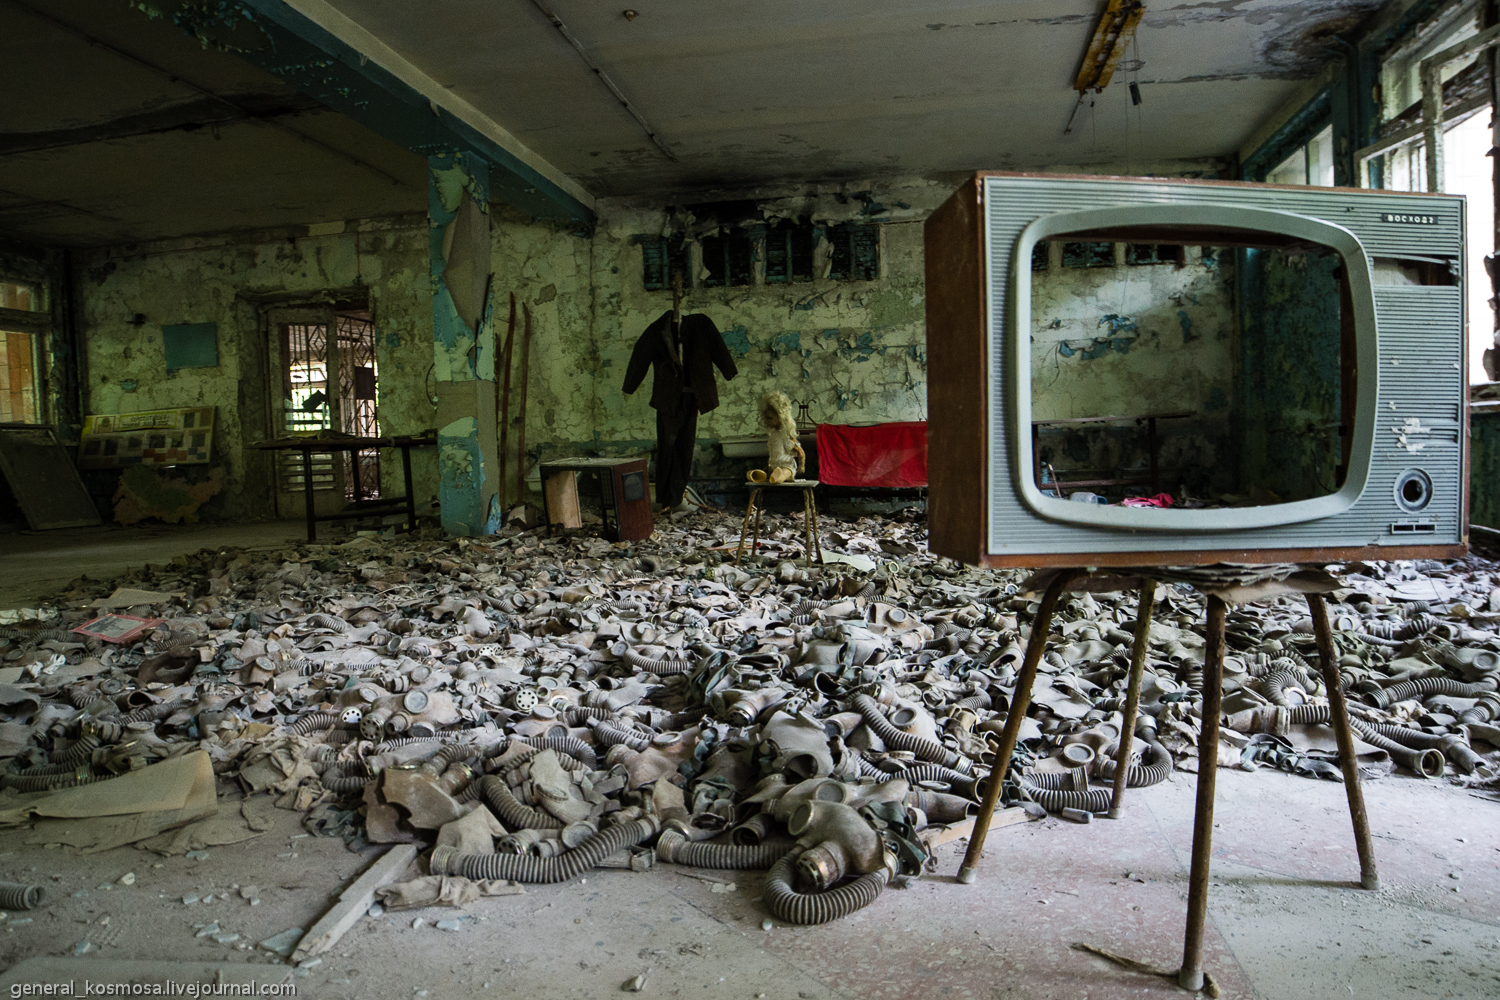 _igp1356 ILLEGAL TOURISM: CHERNOBYL ZONE BY STALKER'S EYES